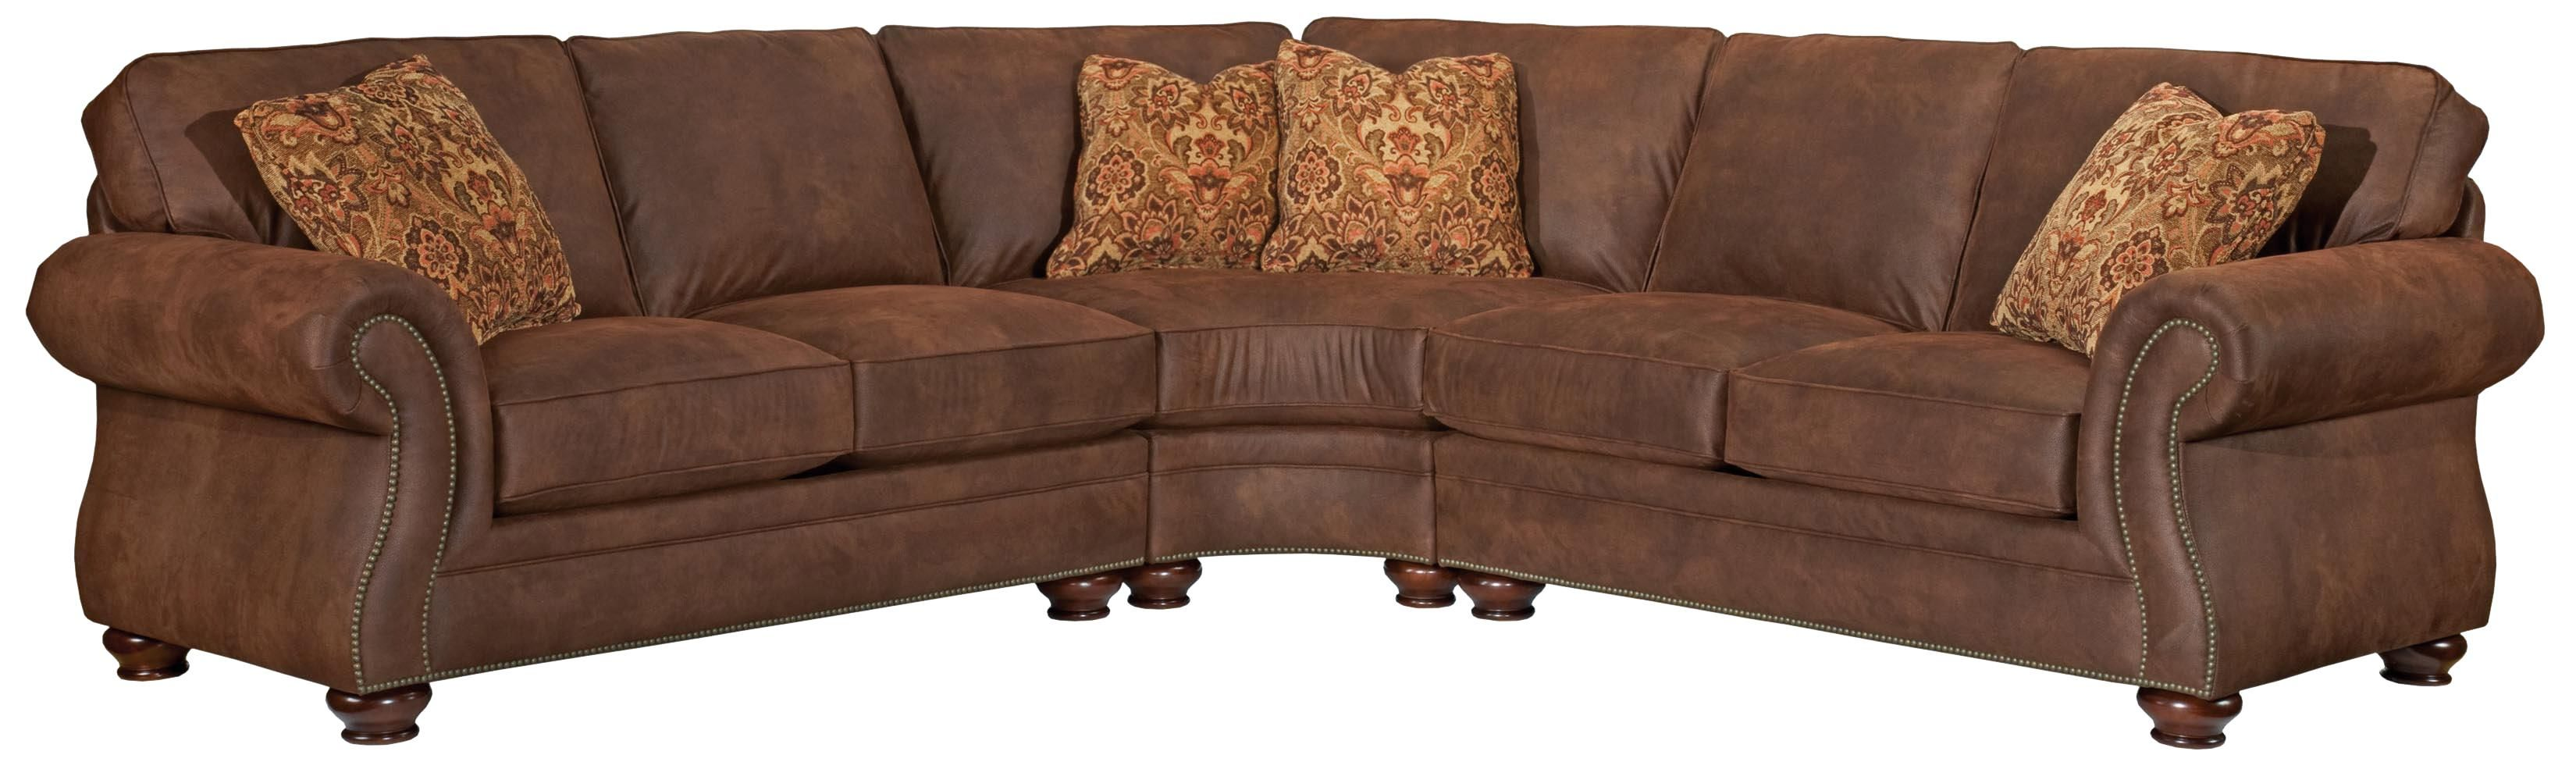 Admirable 5081 Laramie 3 Piece Sectional Sofa By Broyhill Furniture Ocoug Best Dining Table And Chair Ideas Images Ocougorg